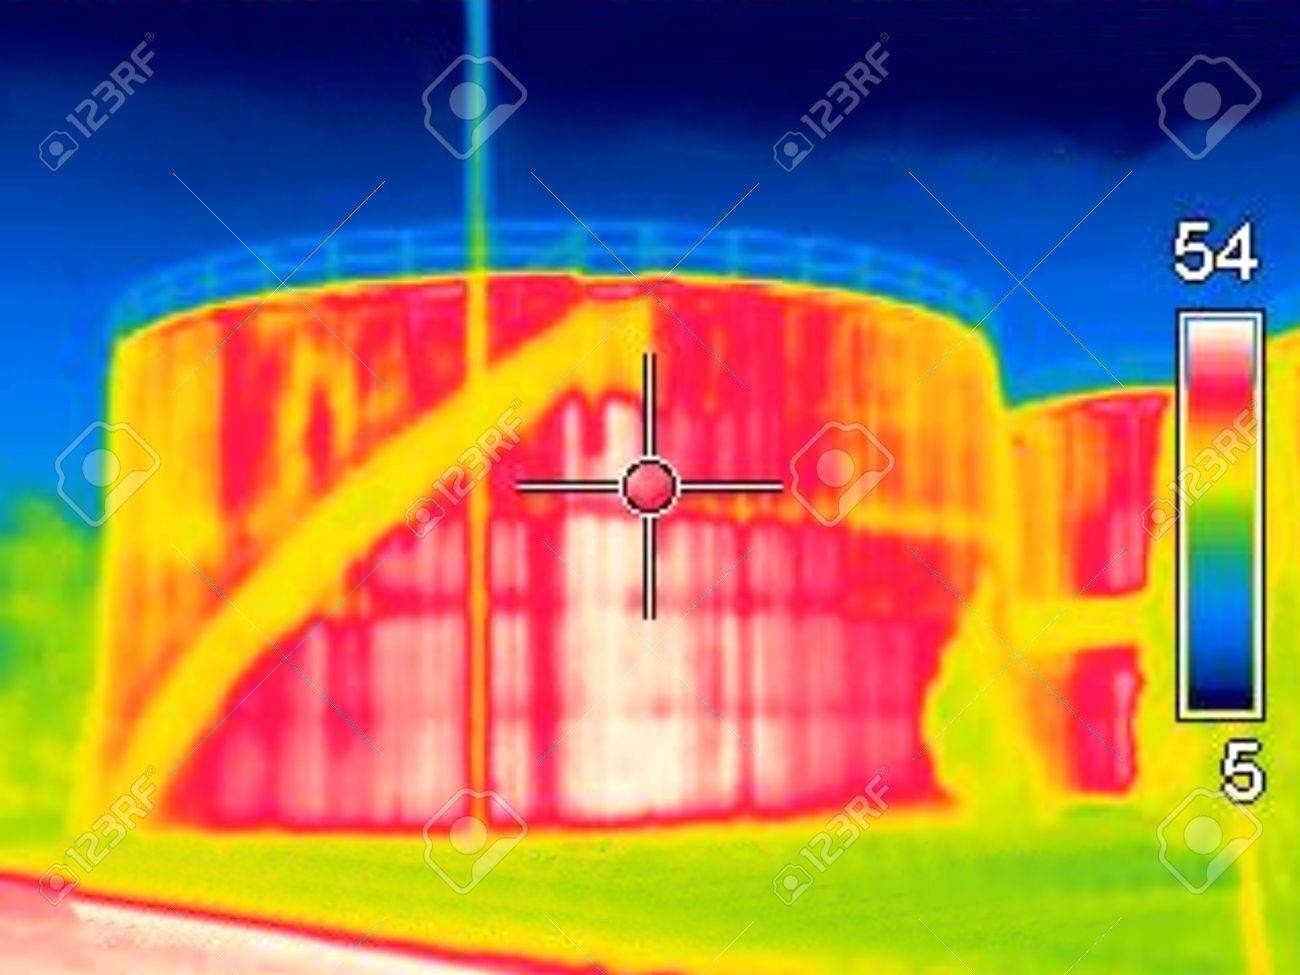 Thermogaphic image of a oil tank Stock Photo - 9116438